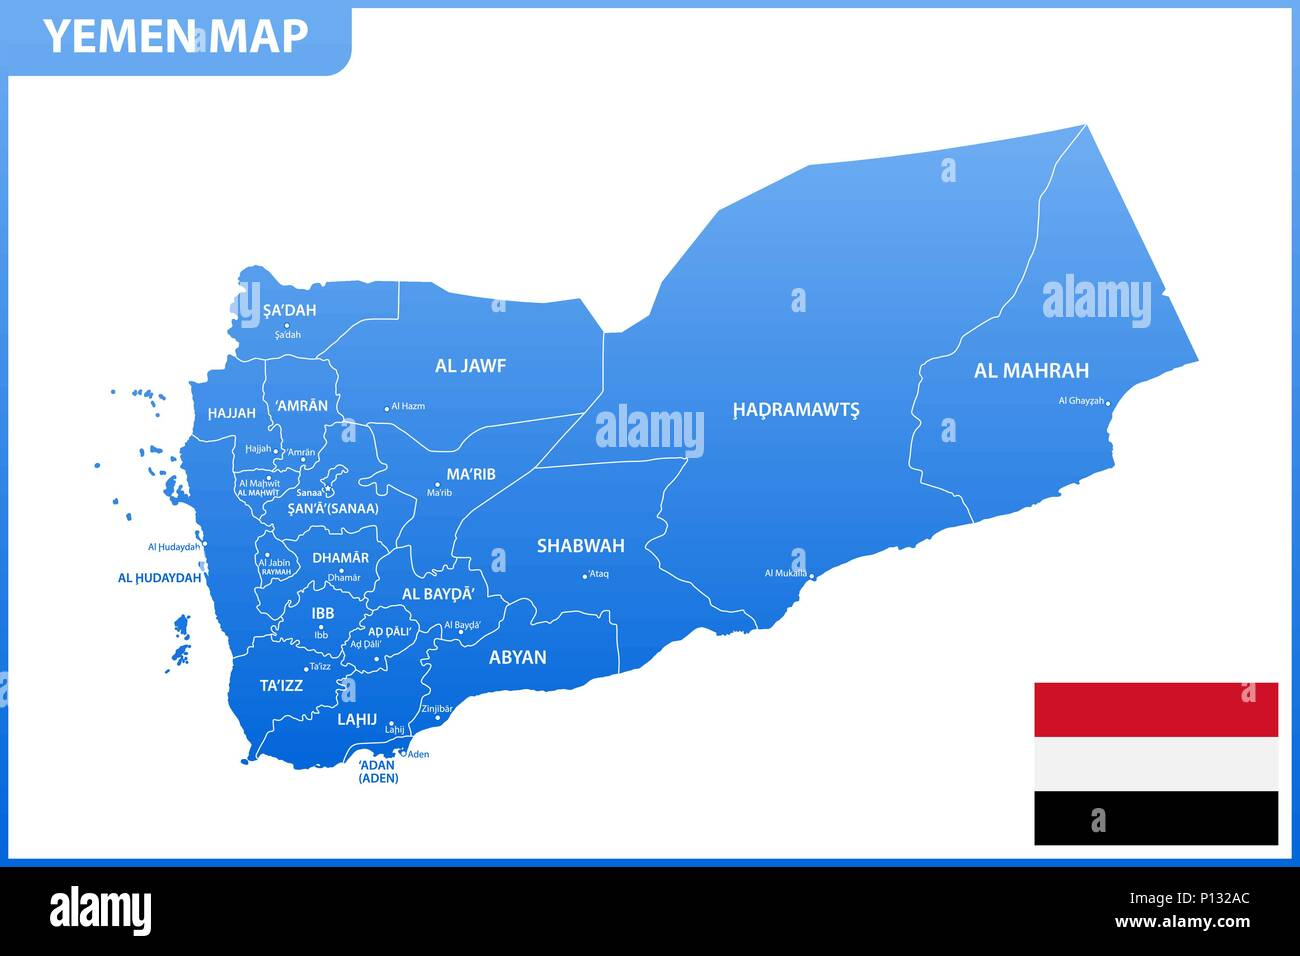 The detailed map of Yemen with regions or states and cities, capital. Administrative division. - Stock Vector